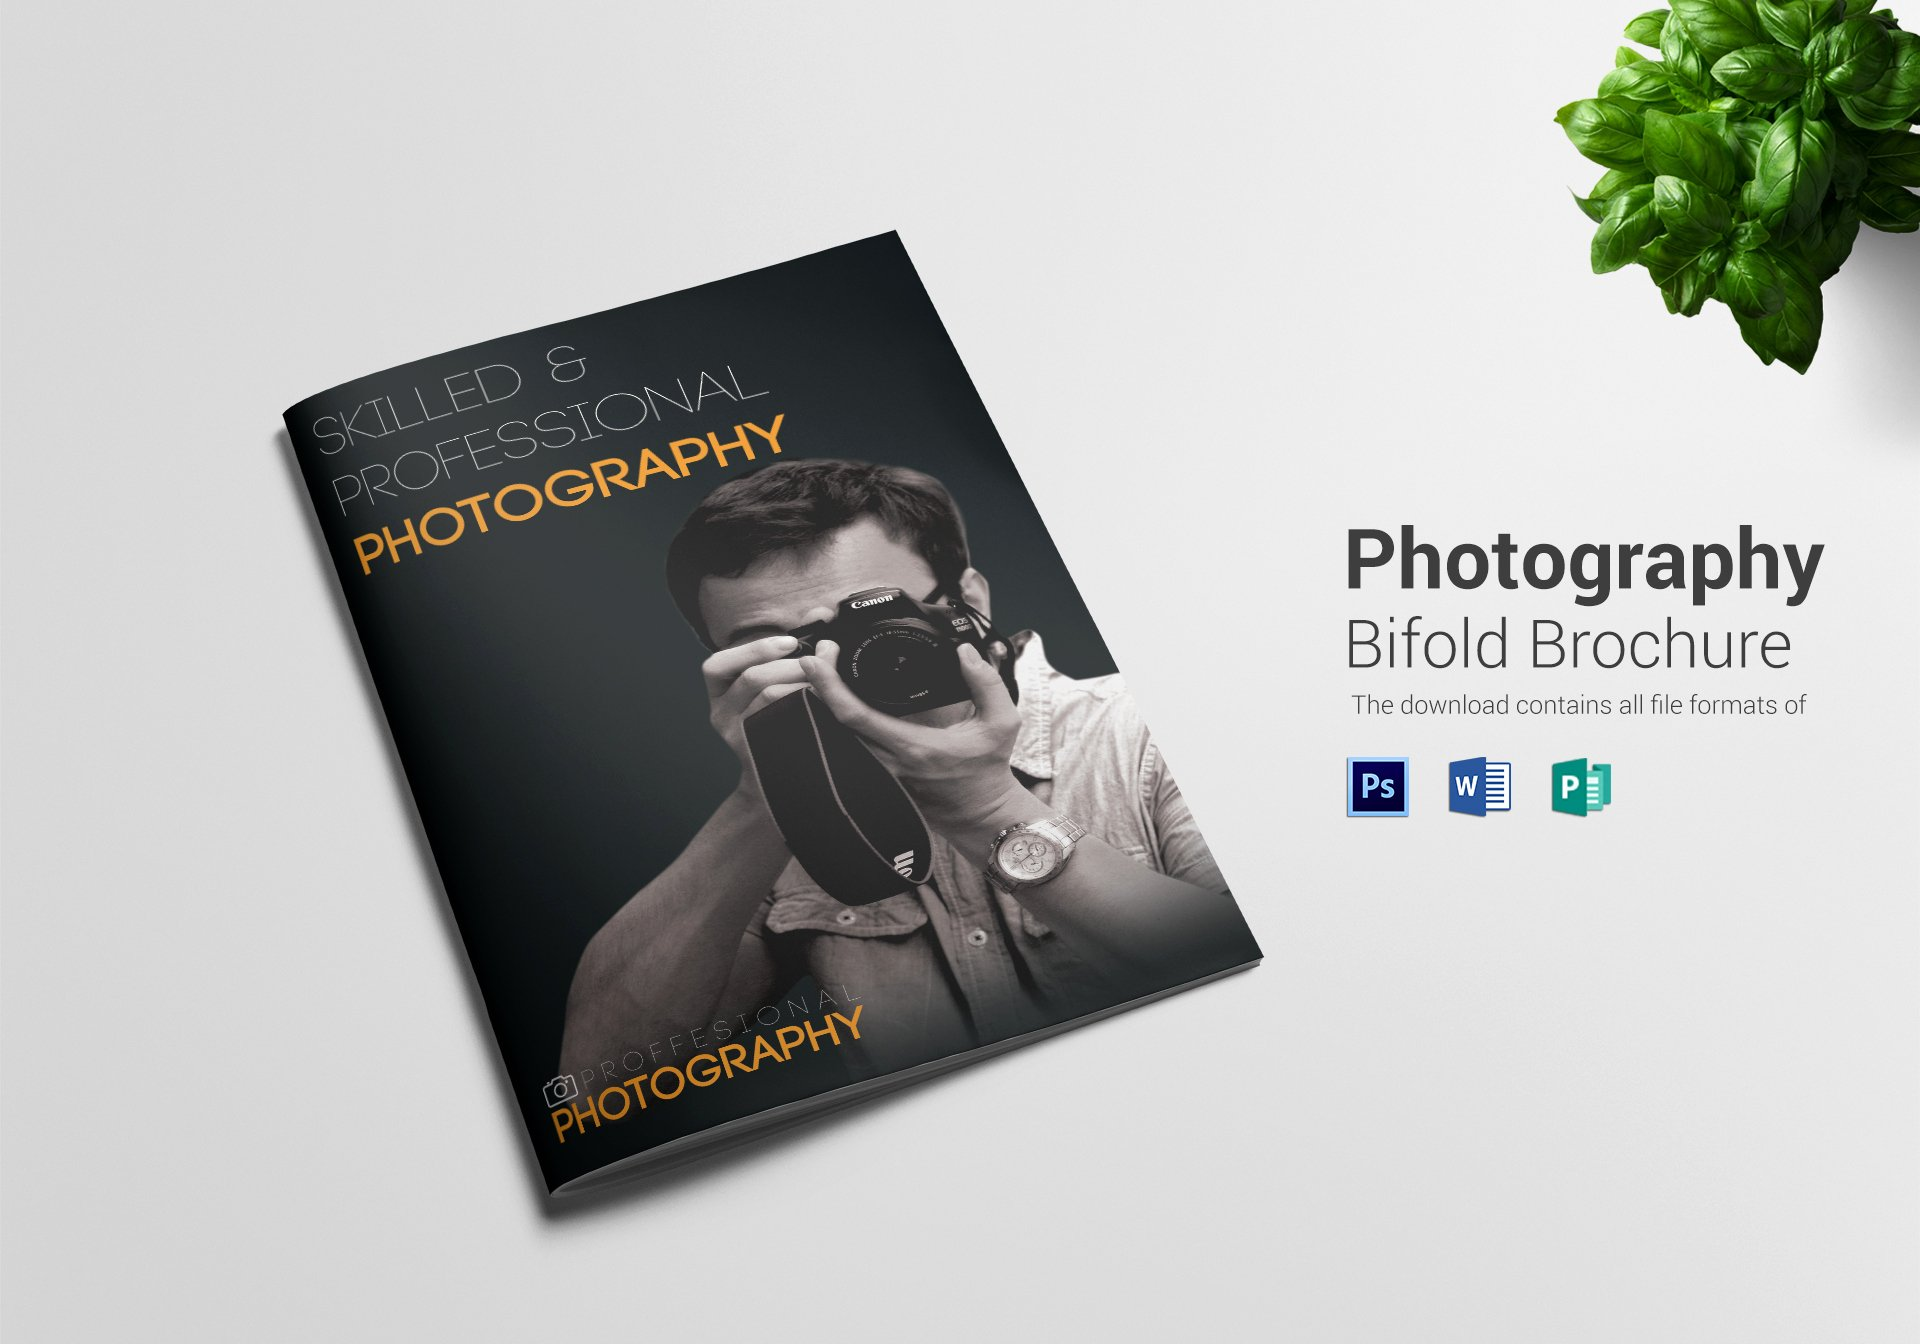 Bi Fold Brochure Template Beautiful Graphy A4 Bifold Brochure Design Template In Psd